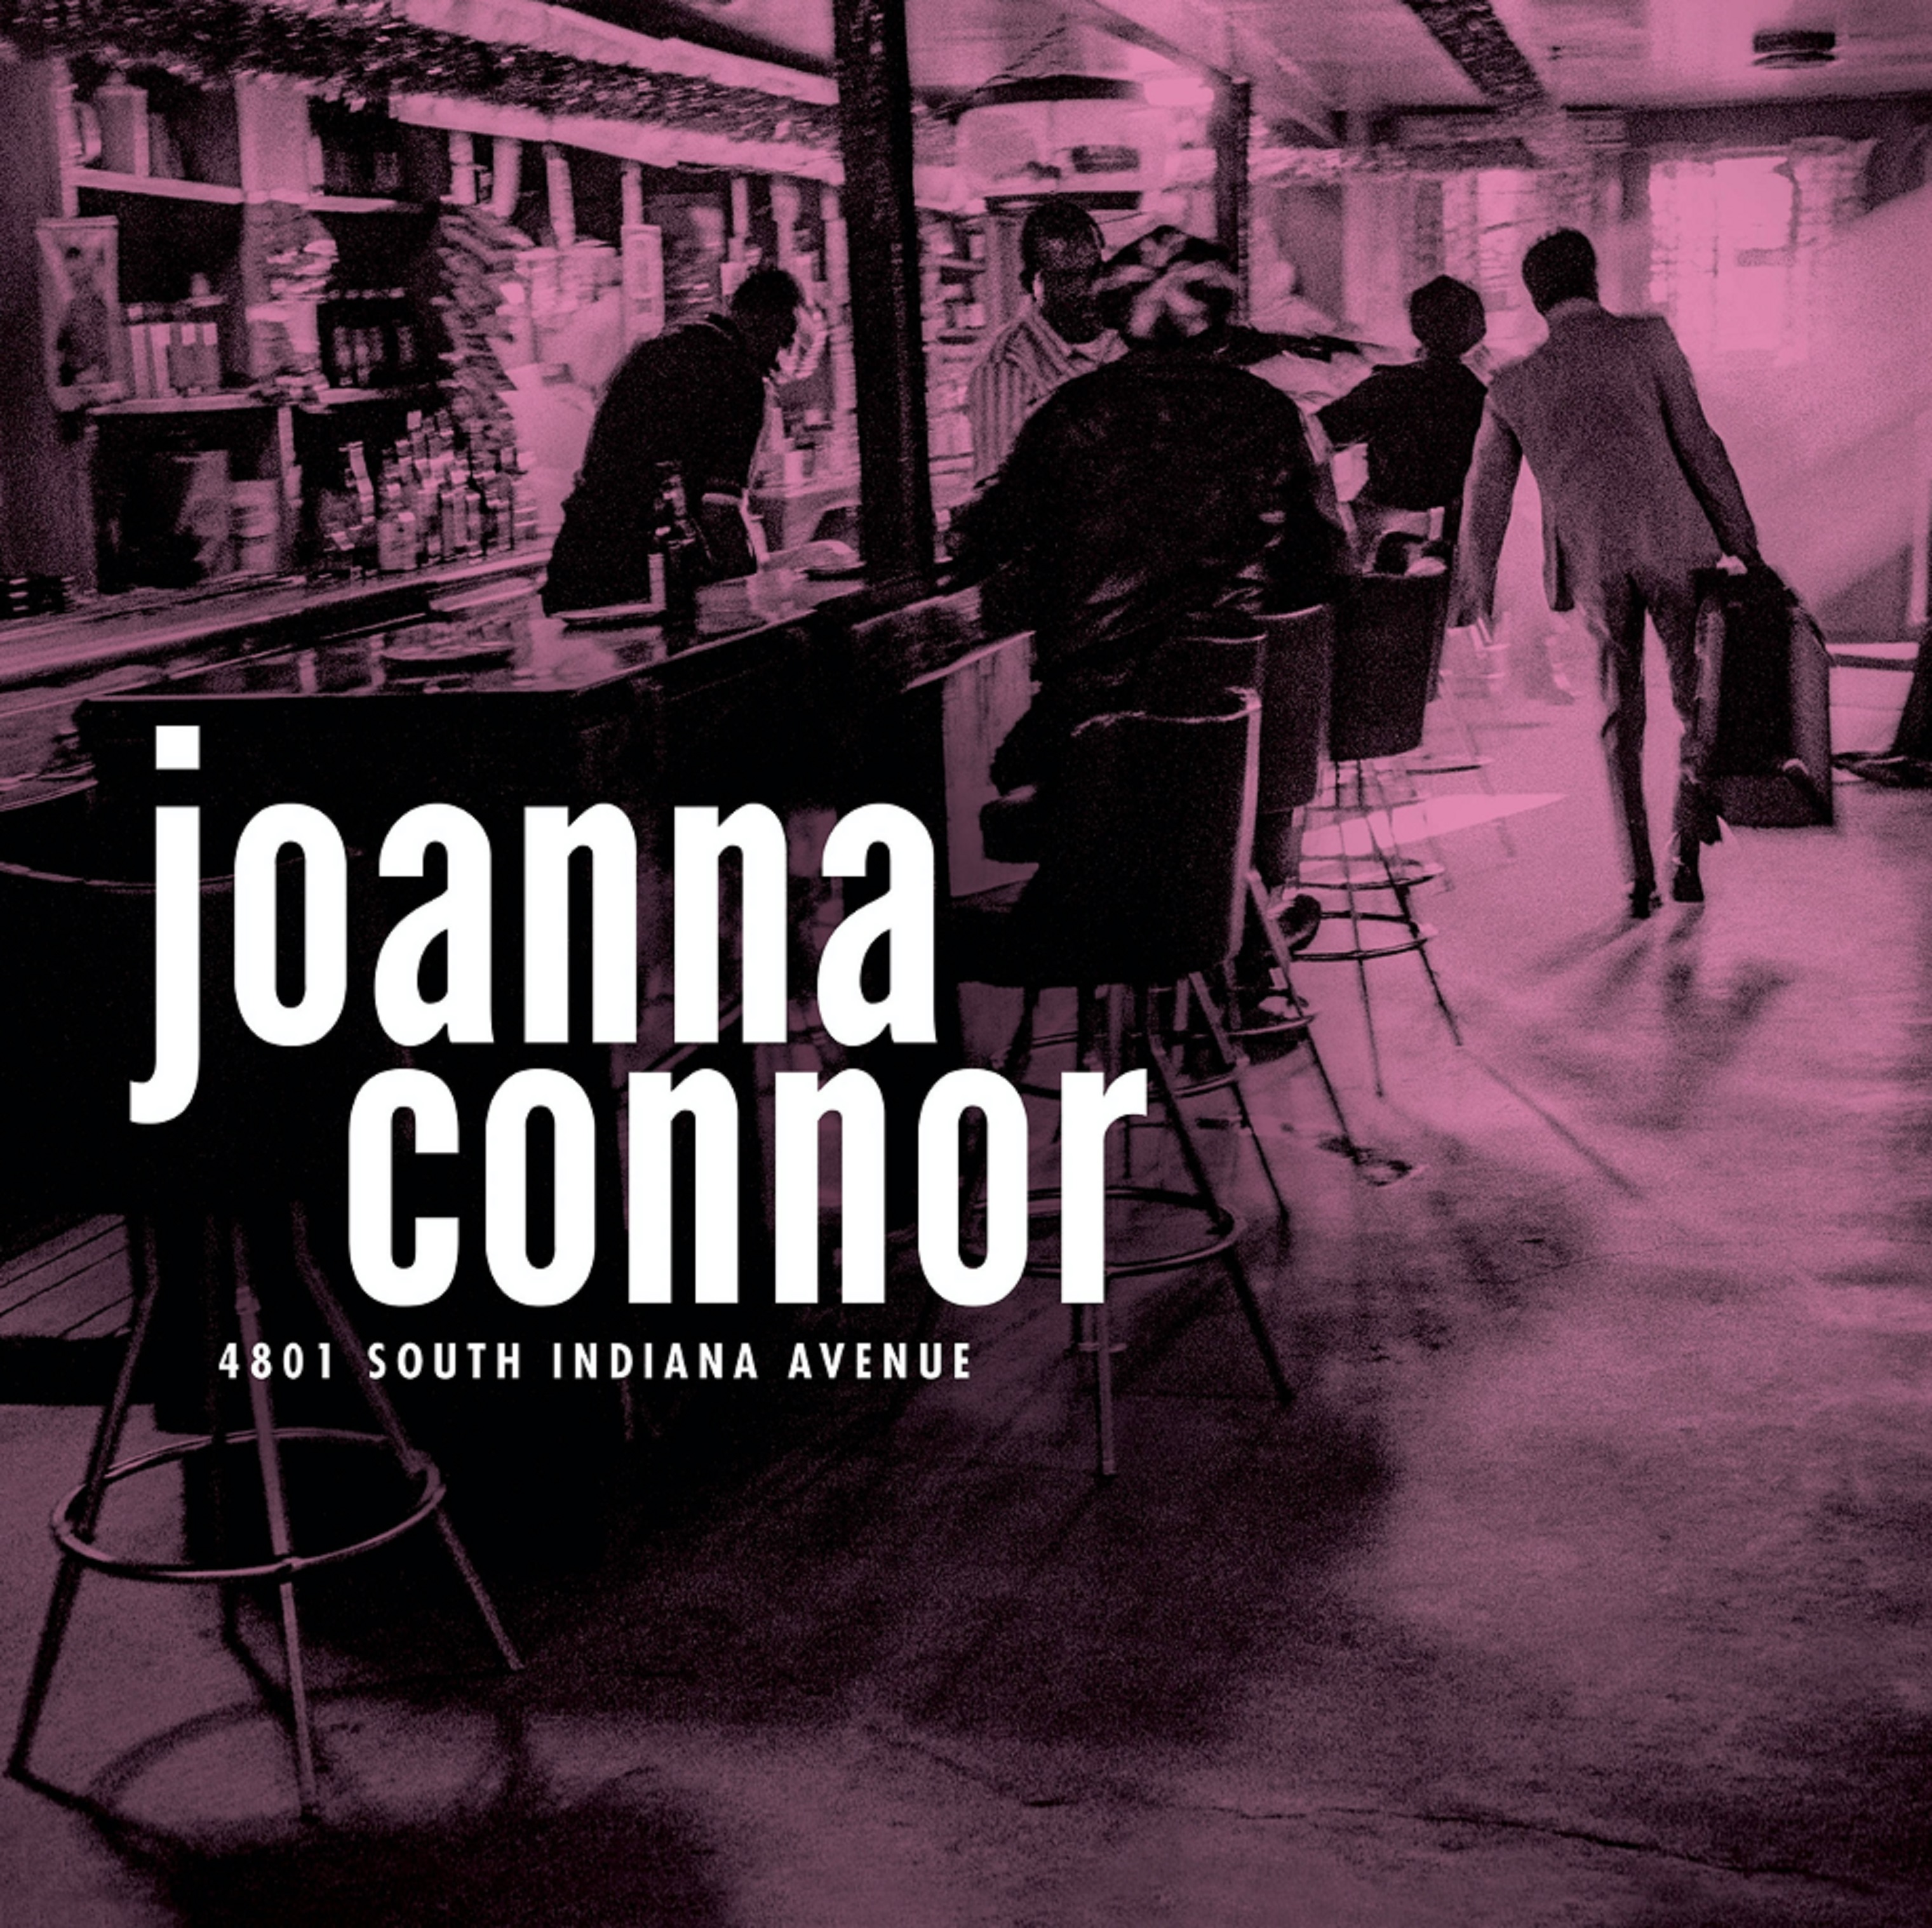 Joanna Connor announces new album produced by Joe Bonamassa